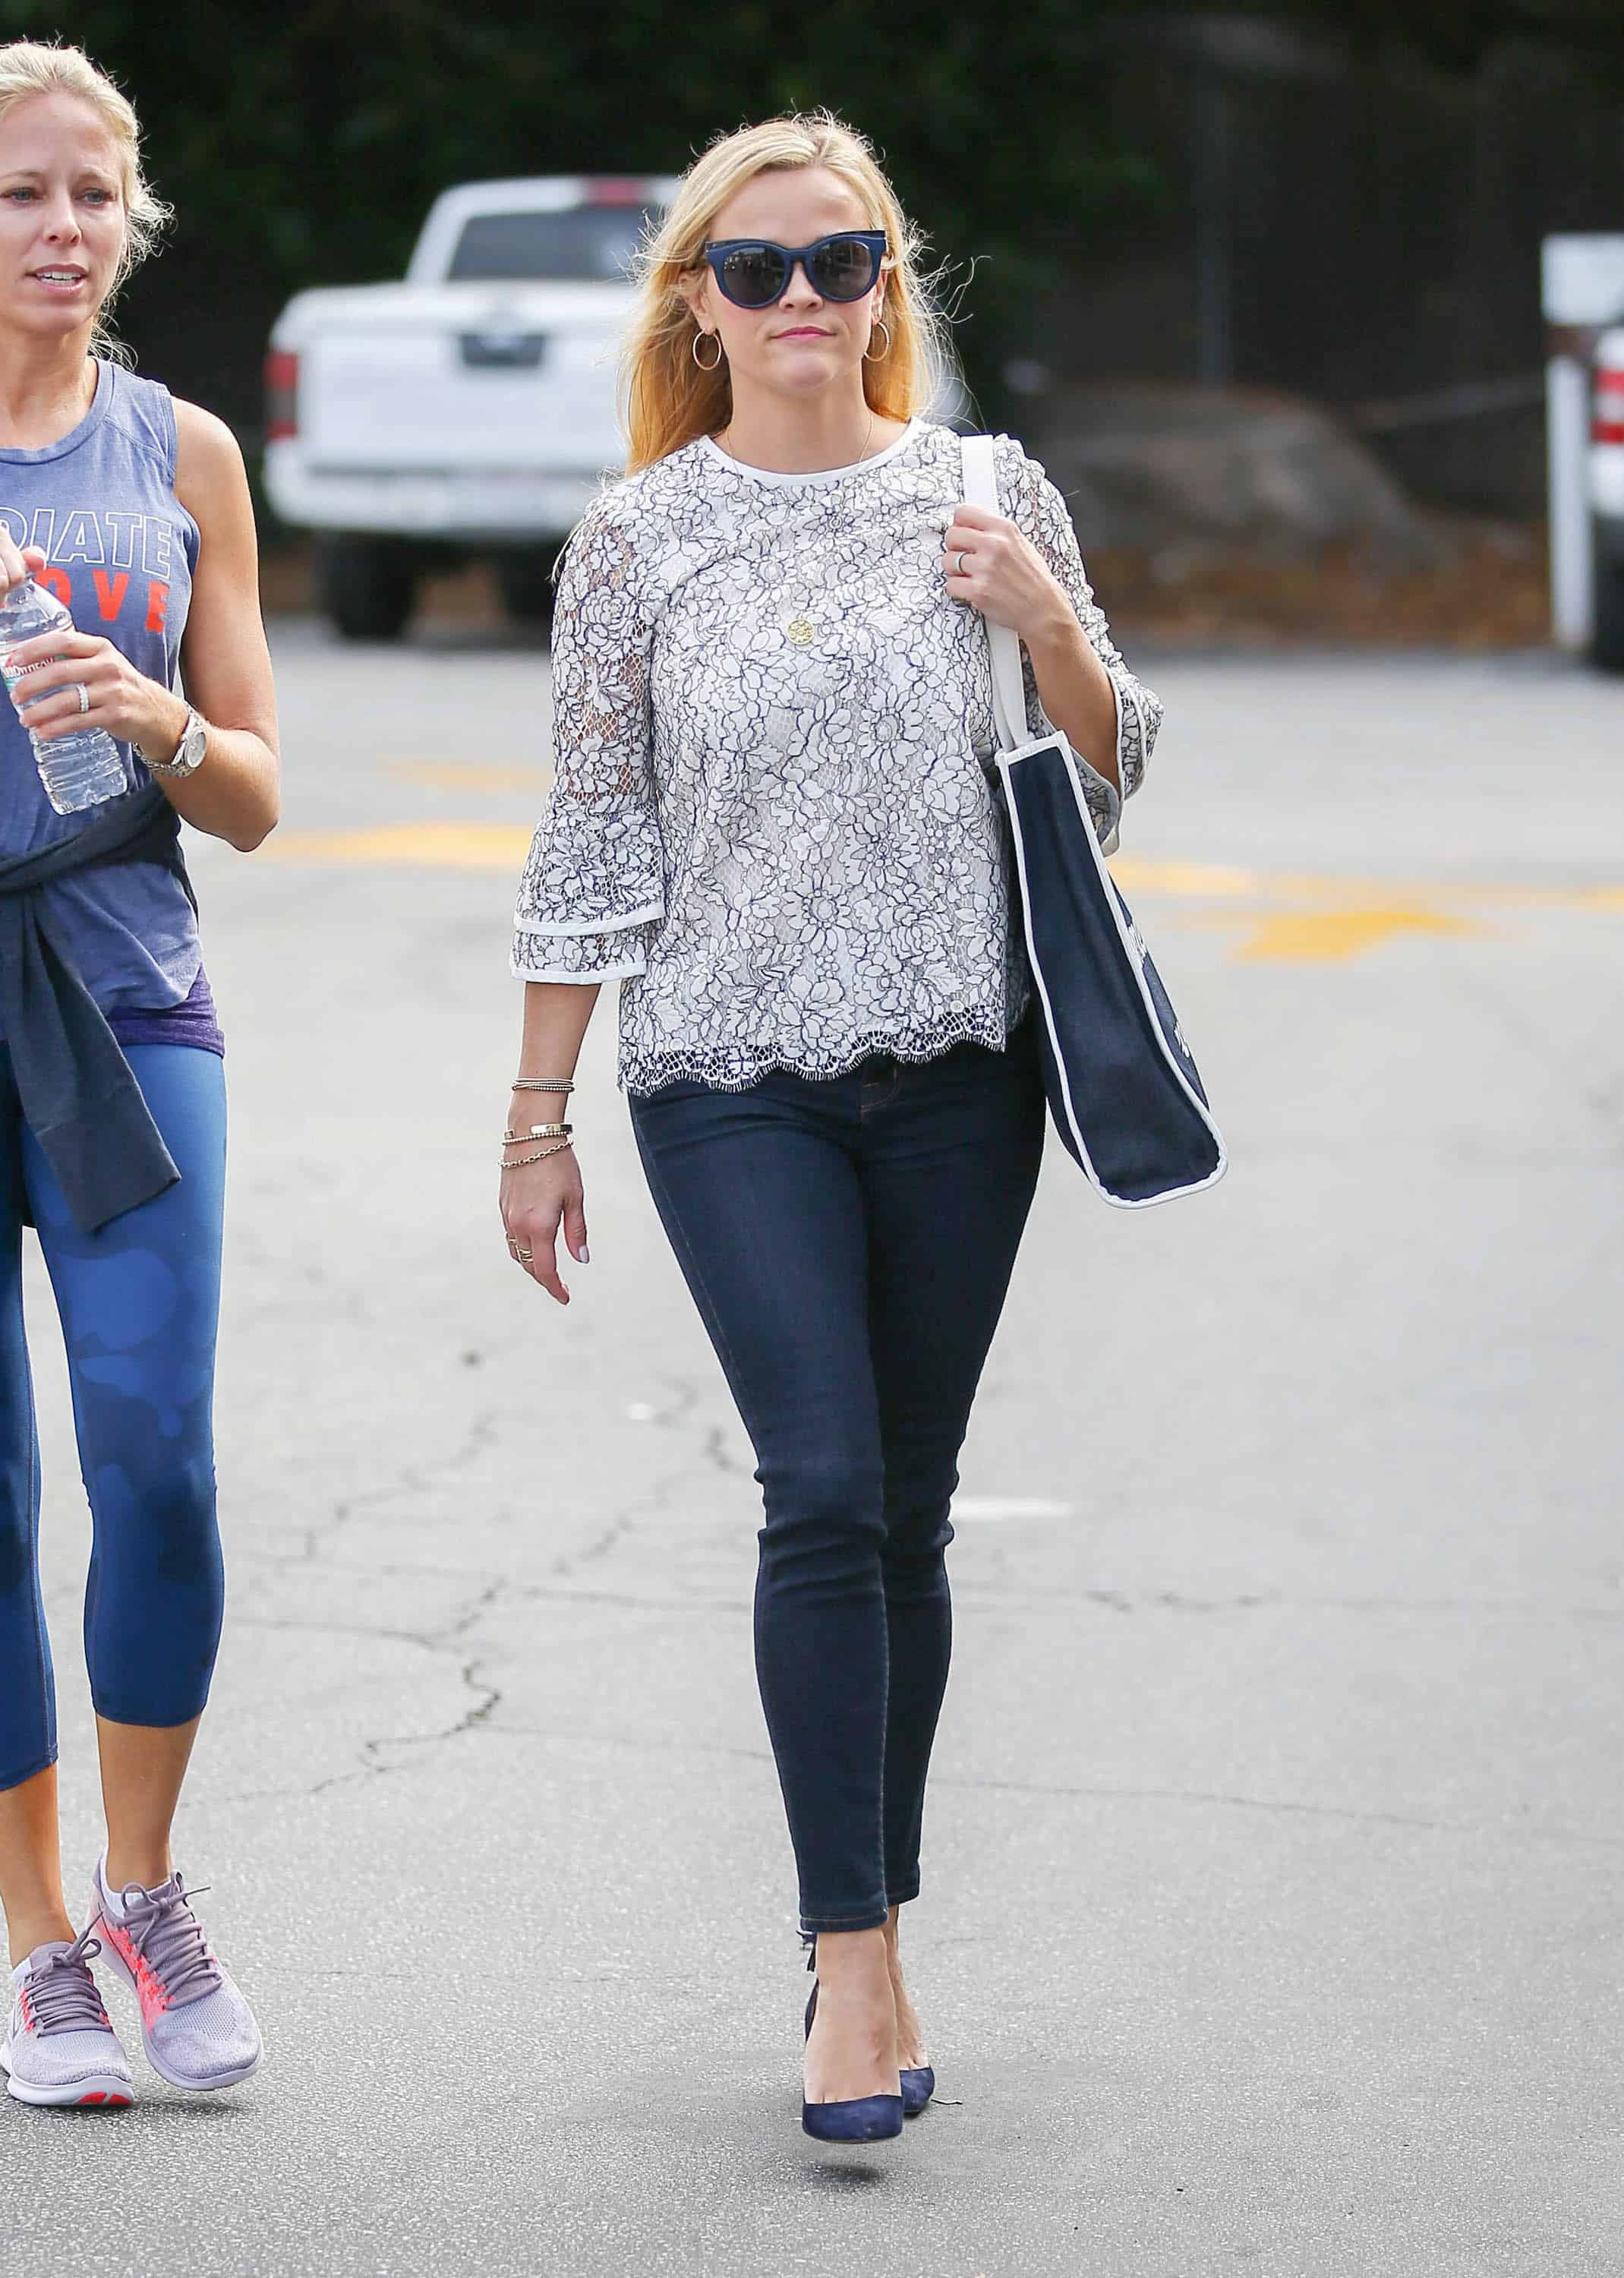 Reese Witherspoon's Look for Less!